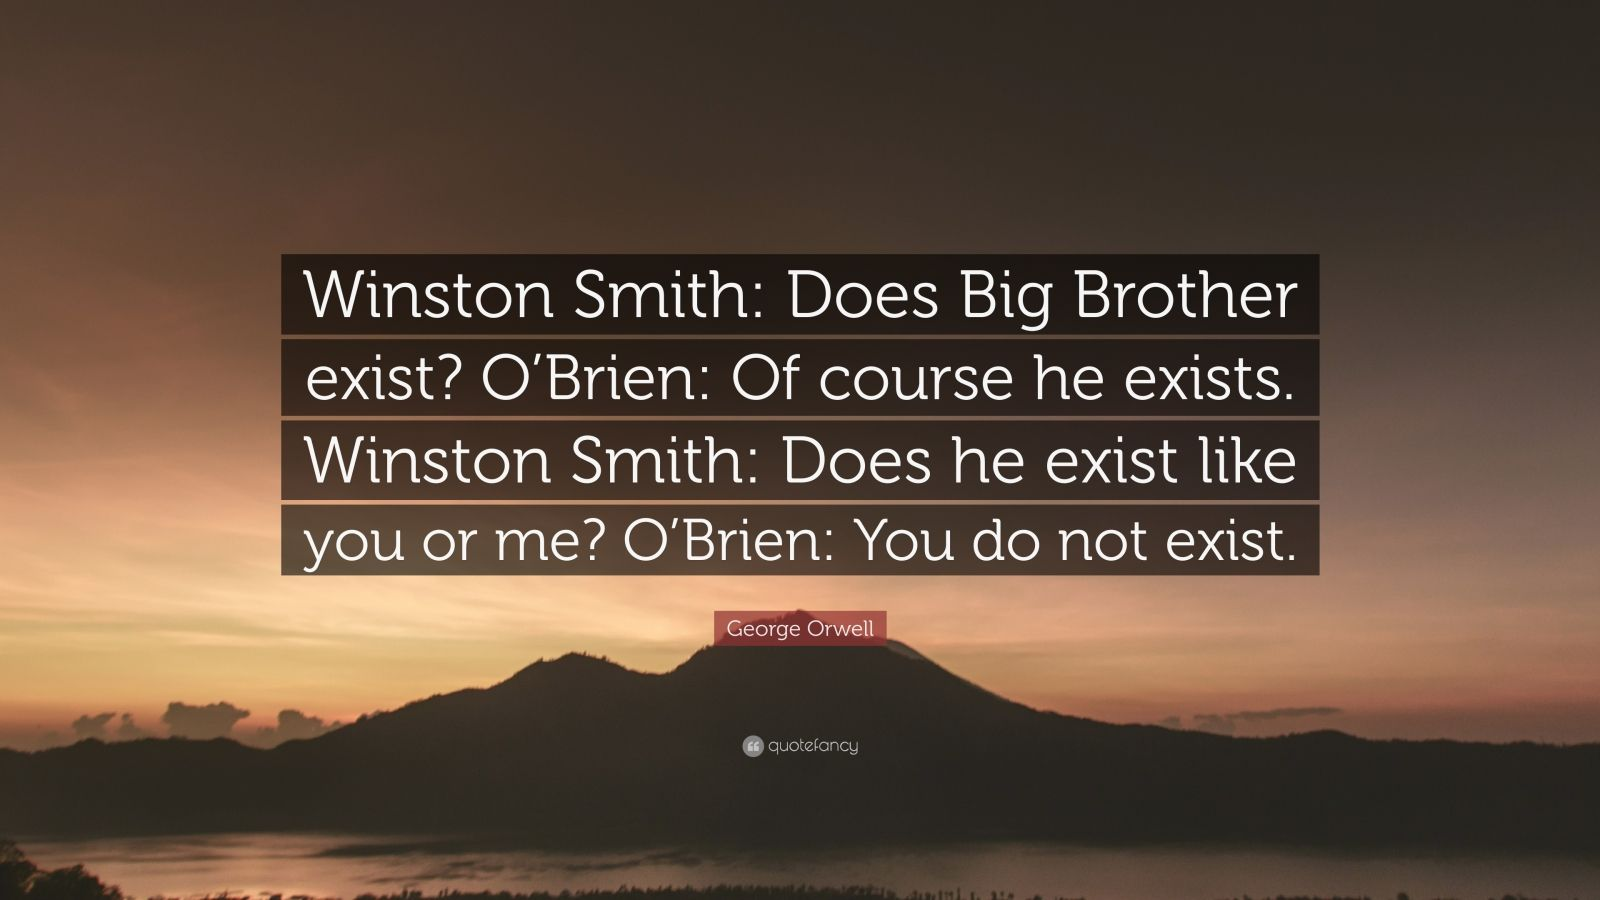 winston and obriens relationship quotes